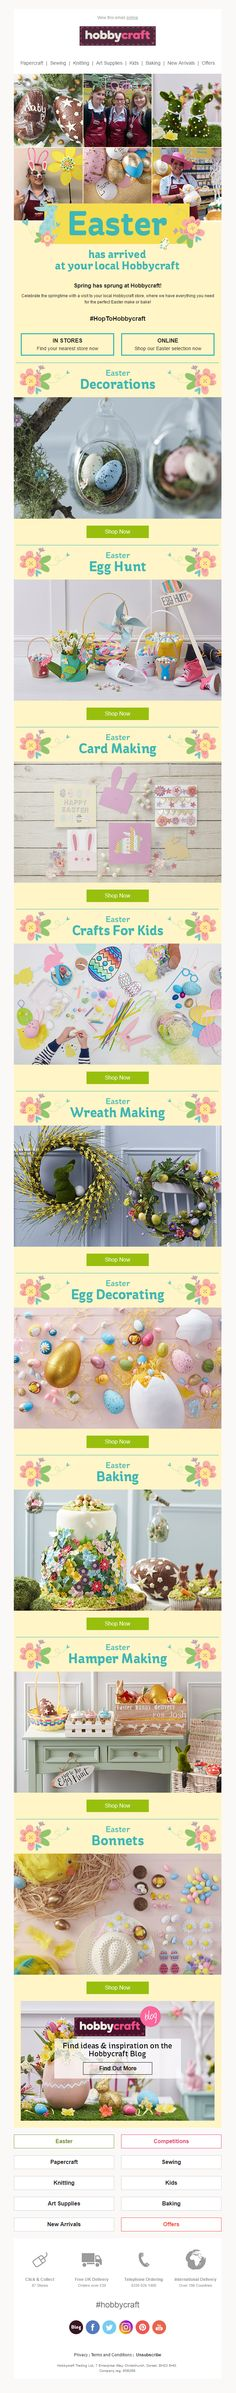 Easter product recommendations email from paperchase easter email from hobbycraft negle Gallery